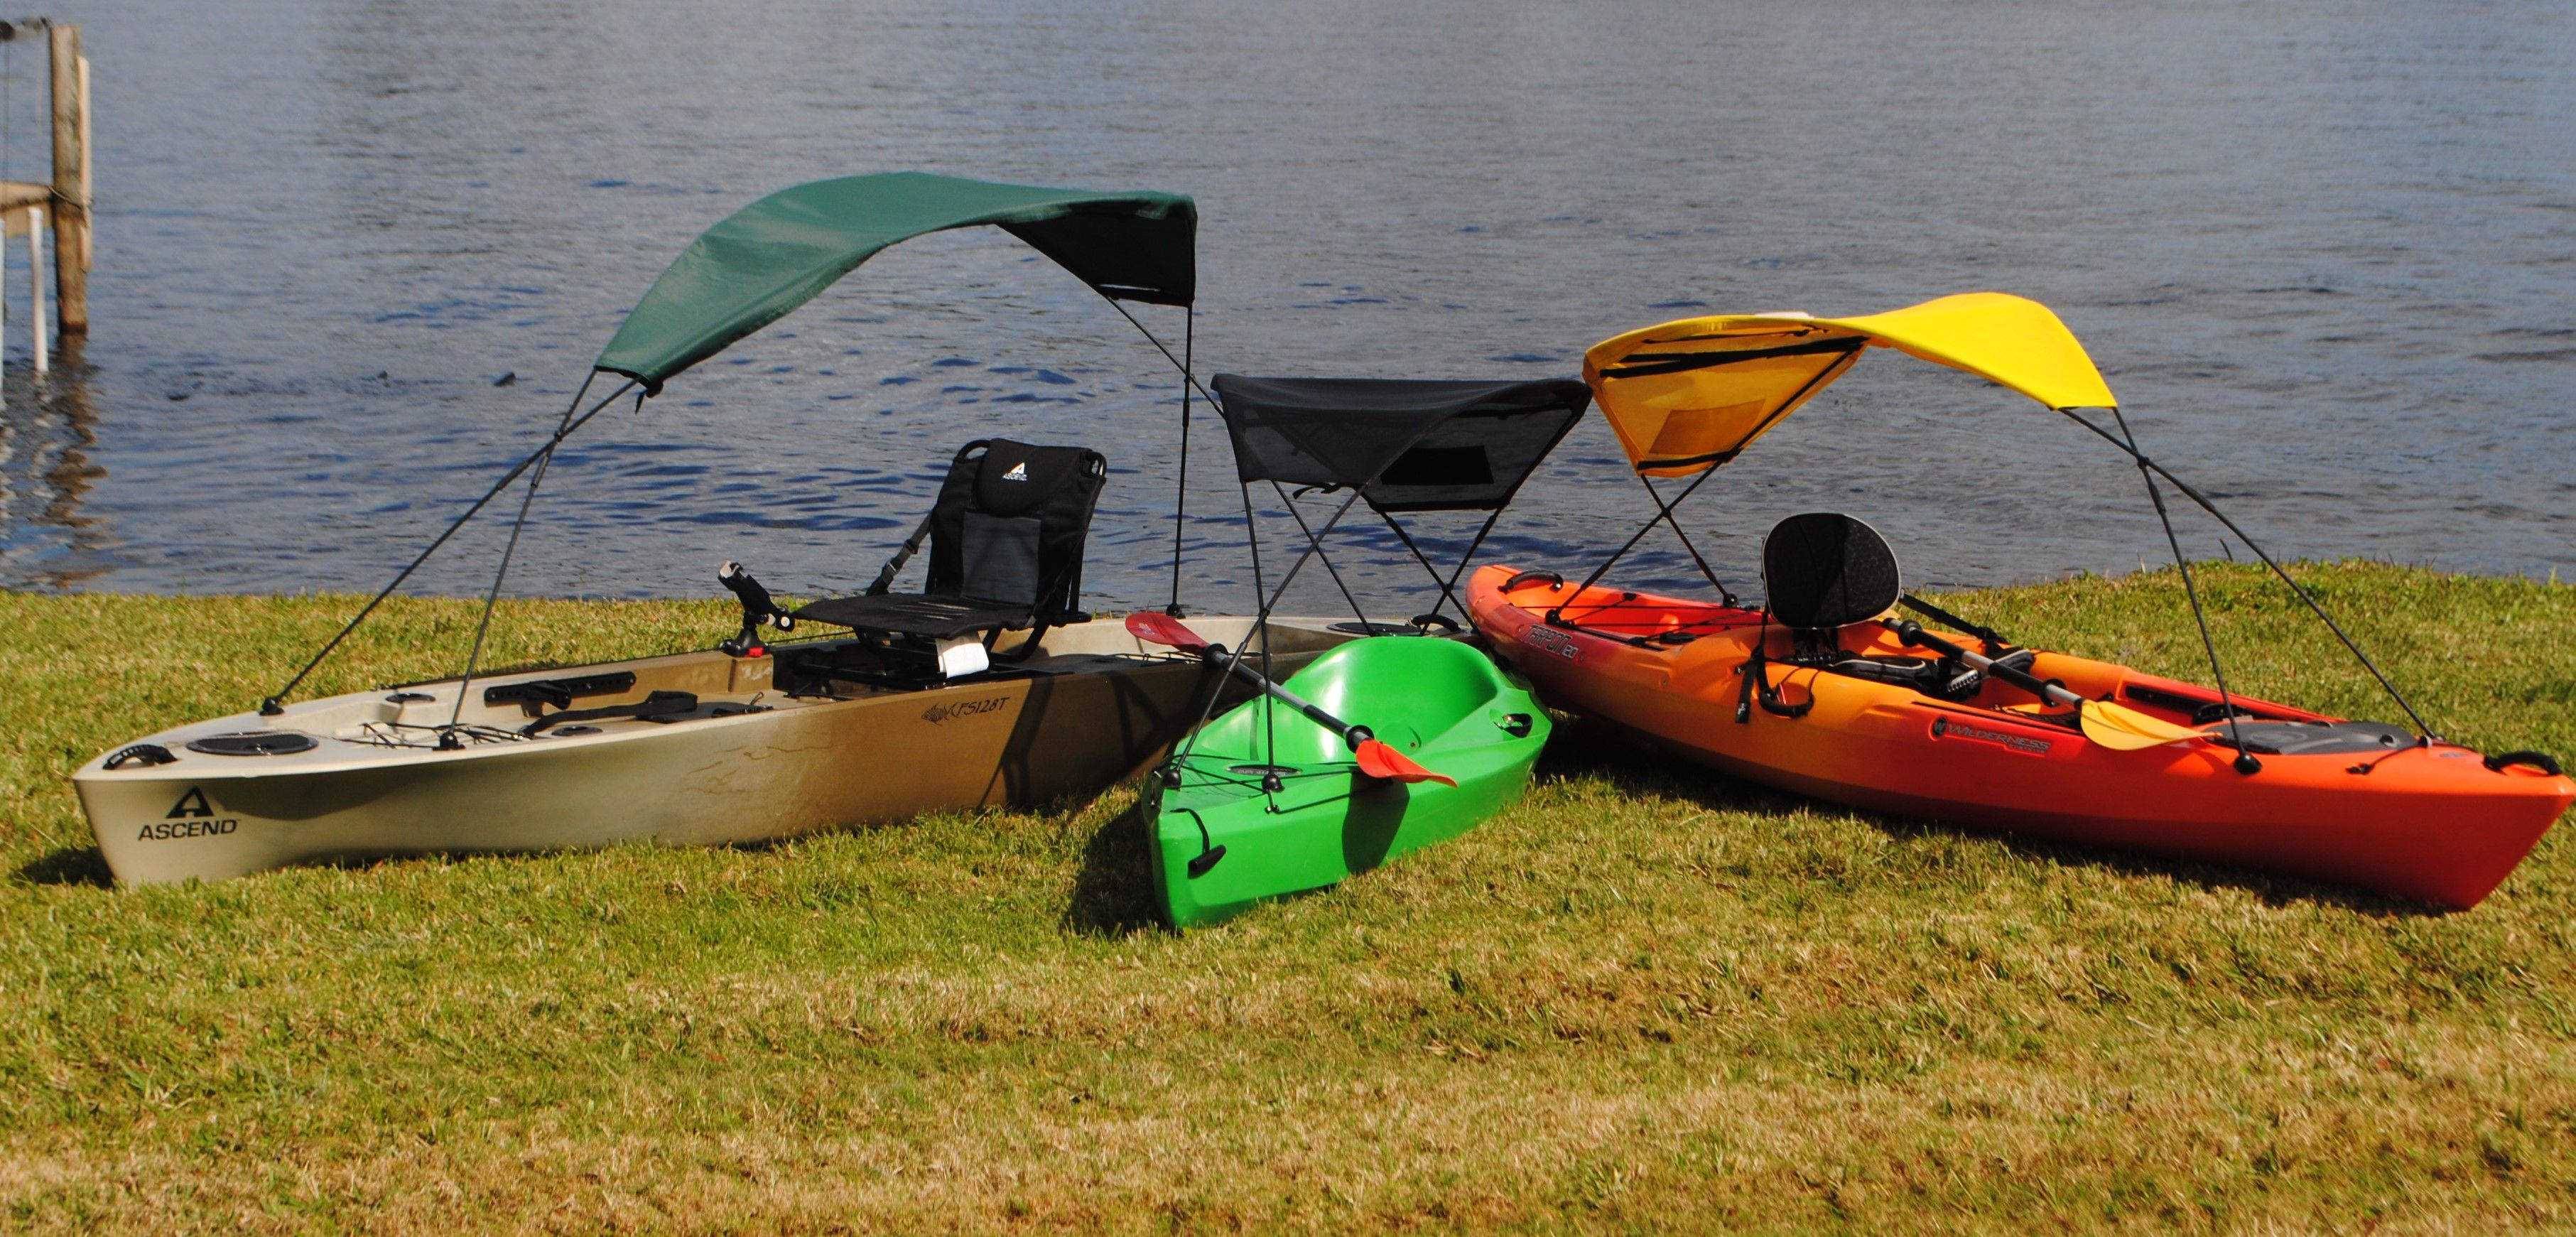 Get a canopy for kayak now! We are very excited...they are ready! Get your sun shade at www.adventurecanopies.com